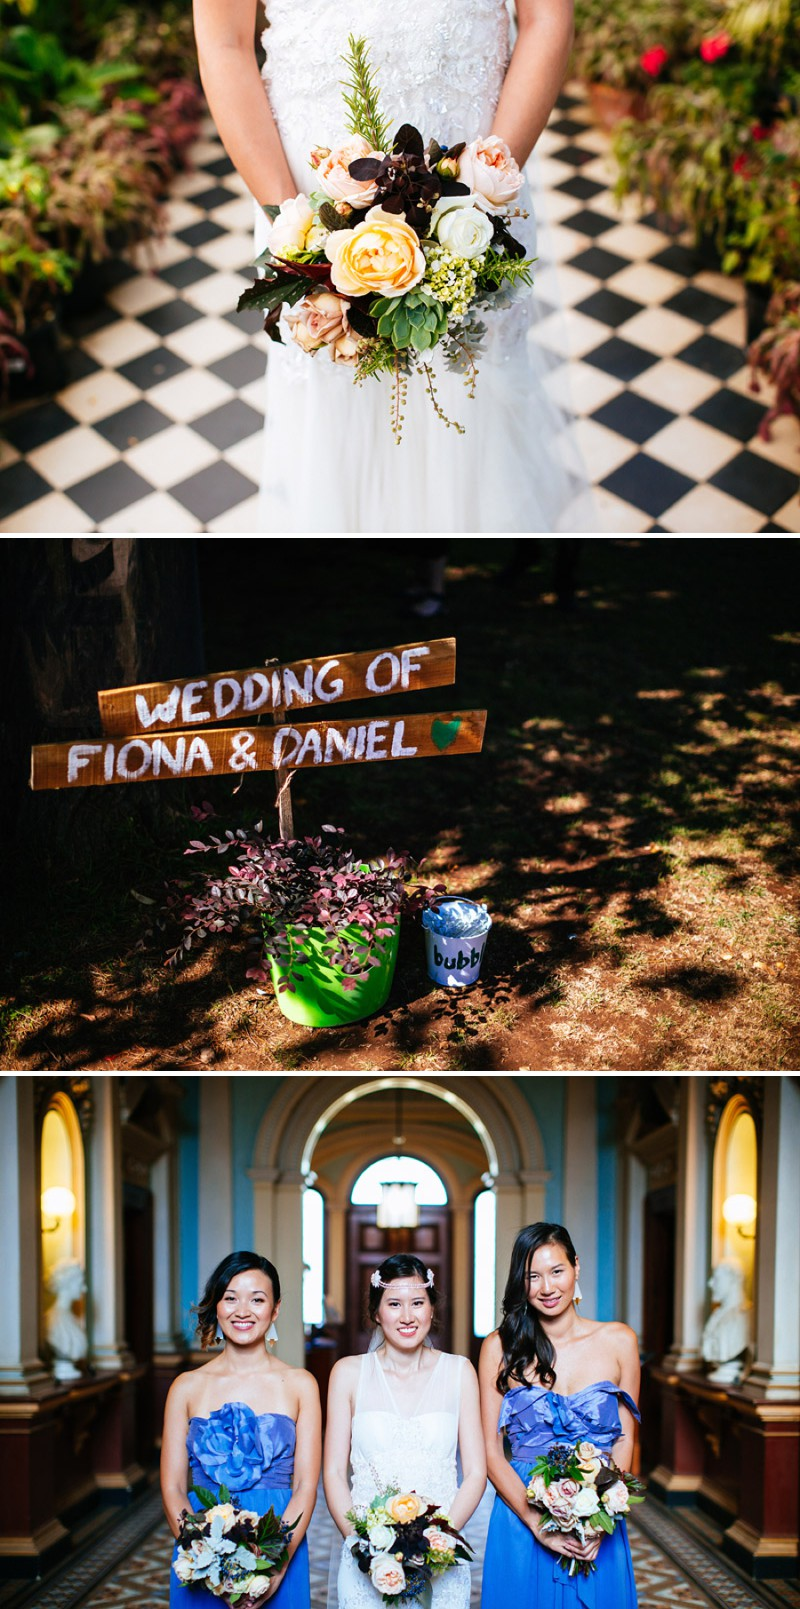 Ultra Hip And Modern Outdoor Destination Wedding In Australia With An Anna Campbell Bridal Gown And An Autumnal Bouquet With Electric Blue Bridesmaid Dresses Photographed By Lakshal Perera. 0001 Falling Slowly.